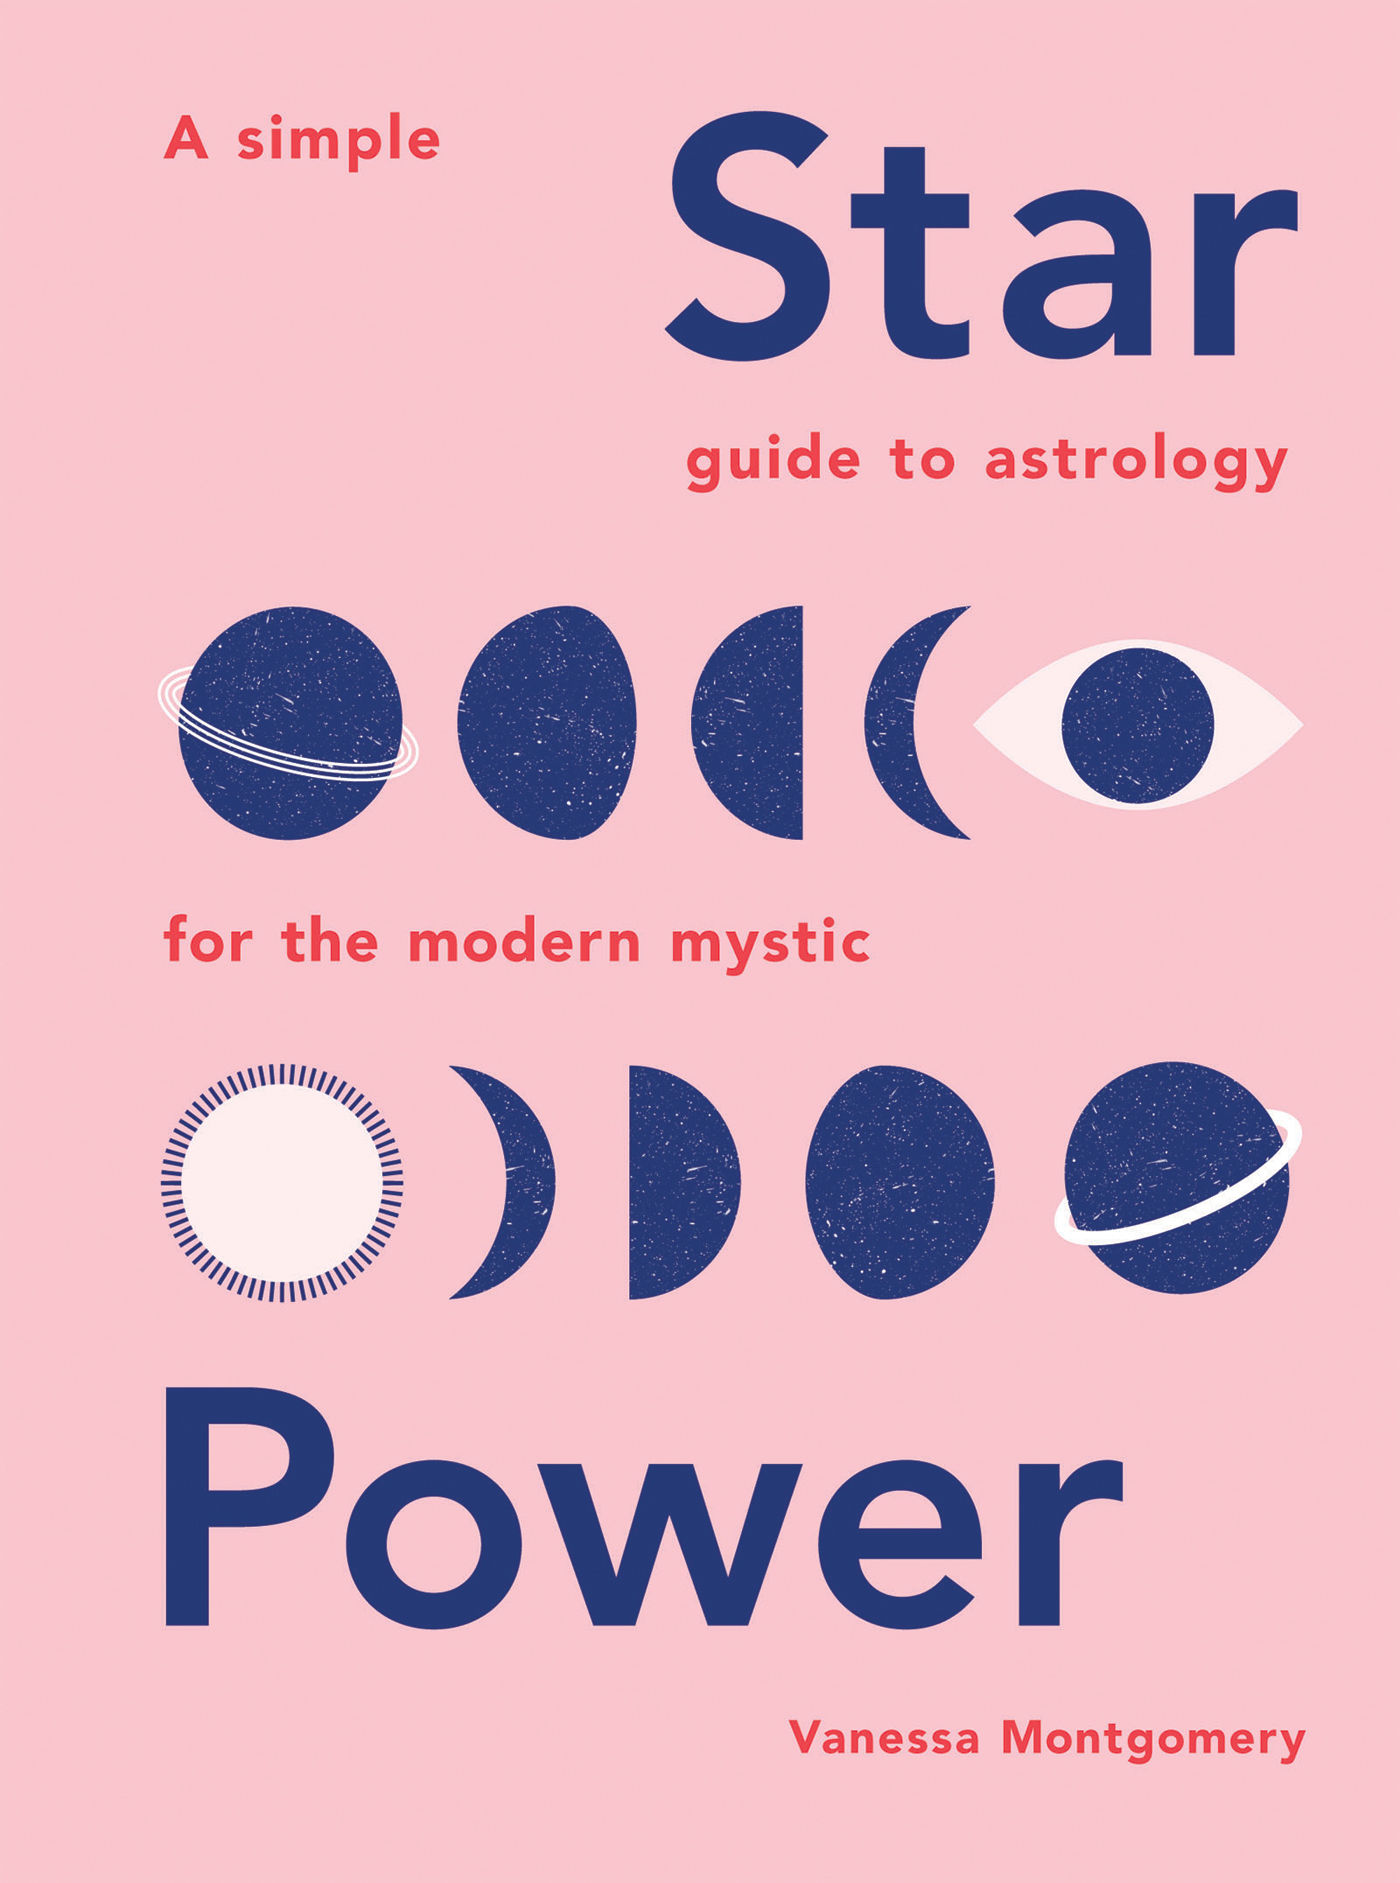 This is a great reference book to understand astrological terminology and how the signs work together. It's a great resource for beginner to intermediate astrology lovers.